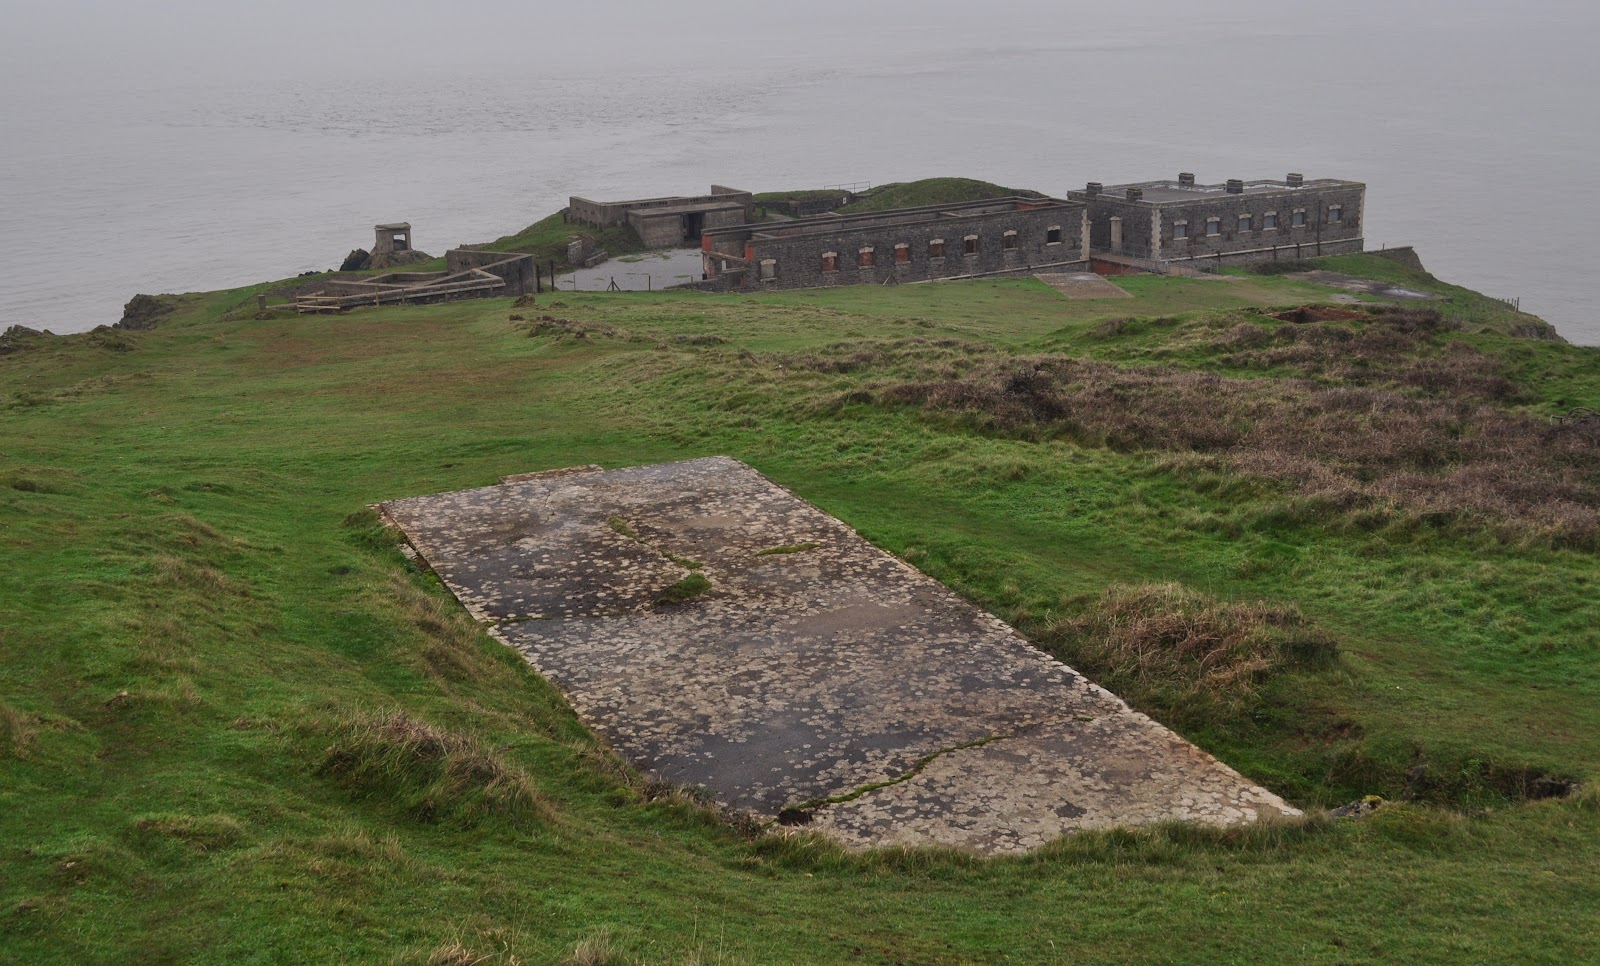 Brean Down Fort (1941 Hardstanding in Foreground)